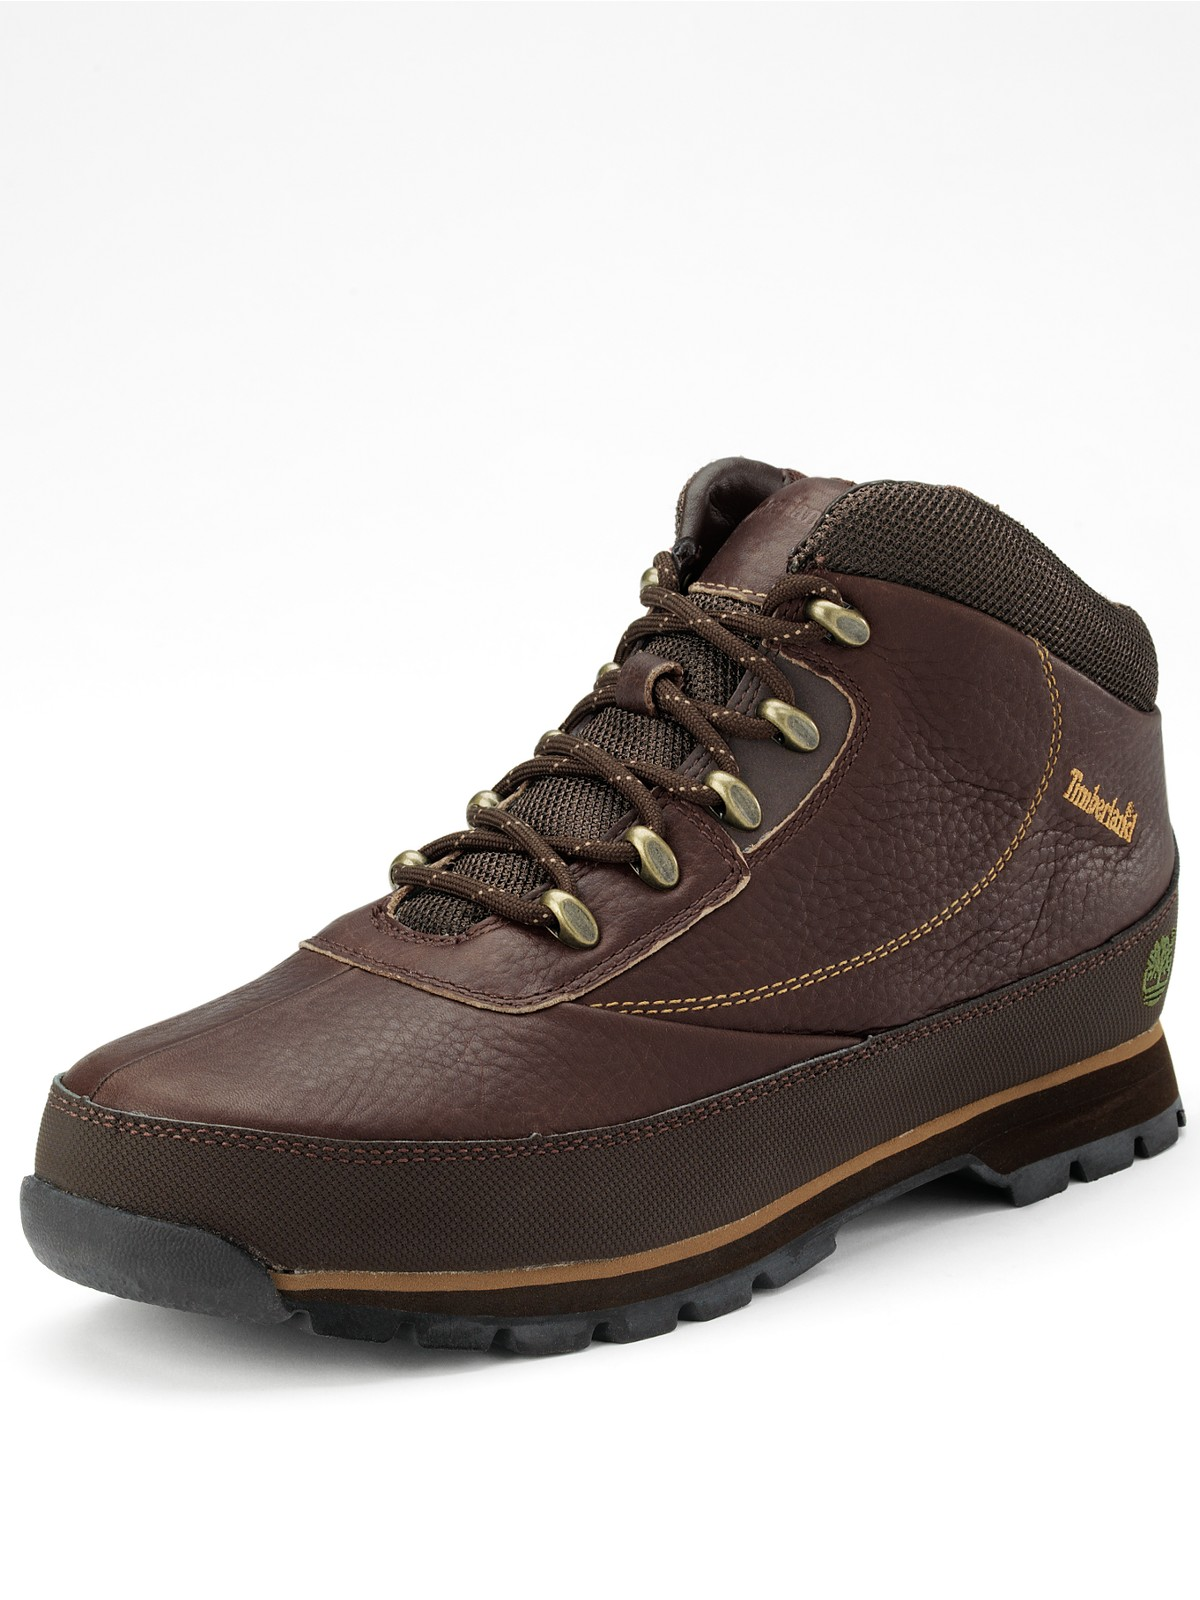 Timberland Euro Brook Hiker Mens Boots In Brown For Men Lyst